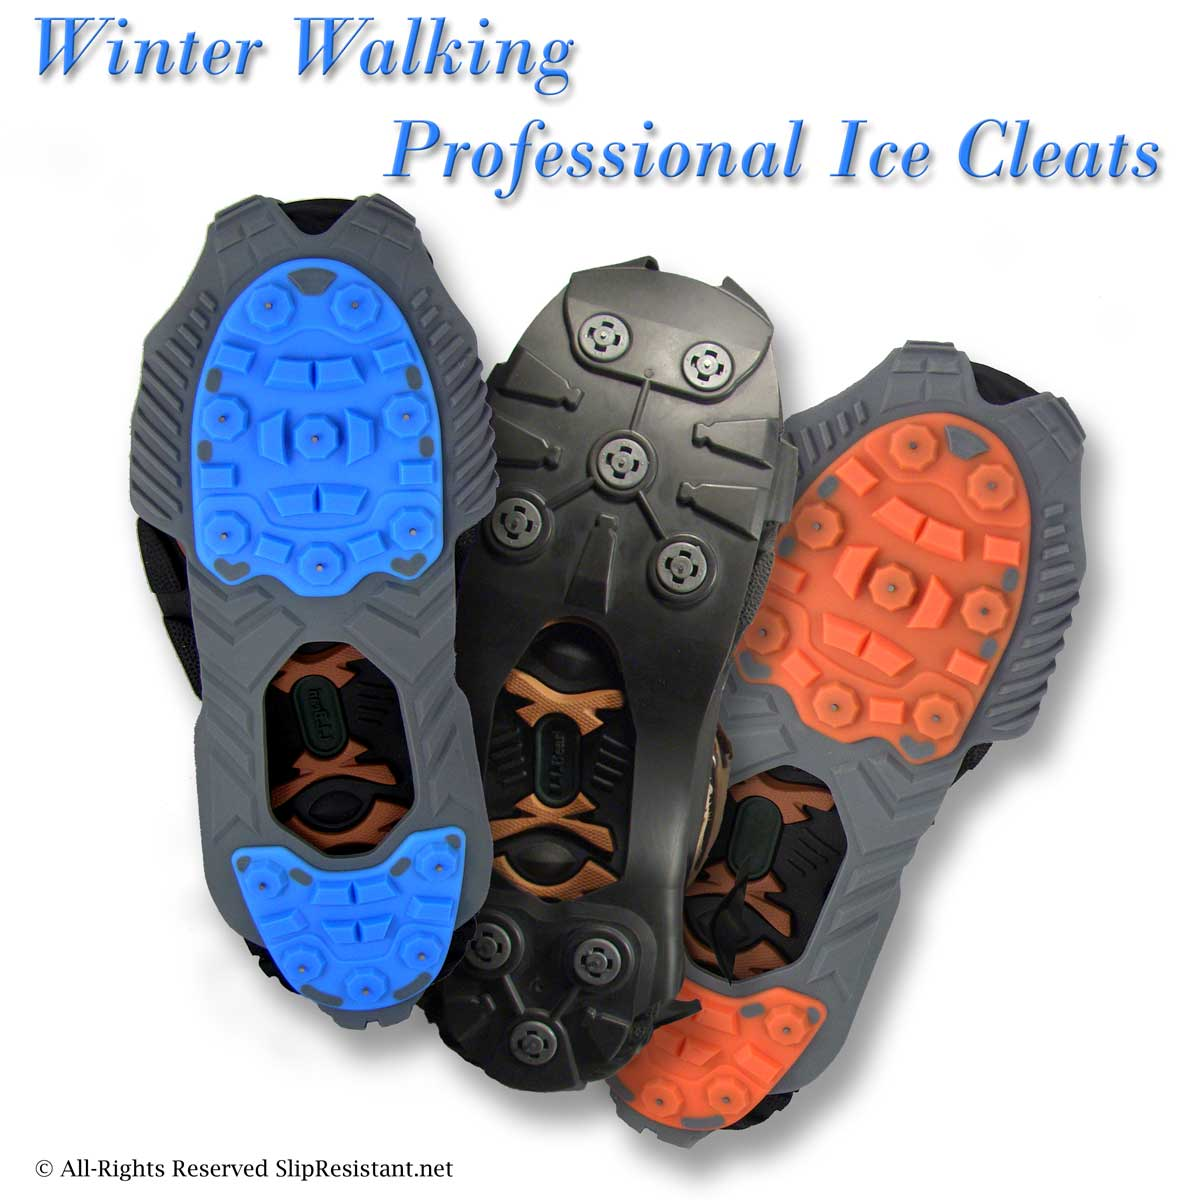 Winter Walking Professional Ice Cleats